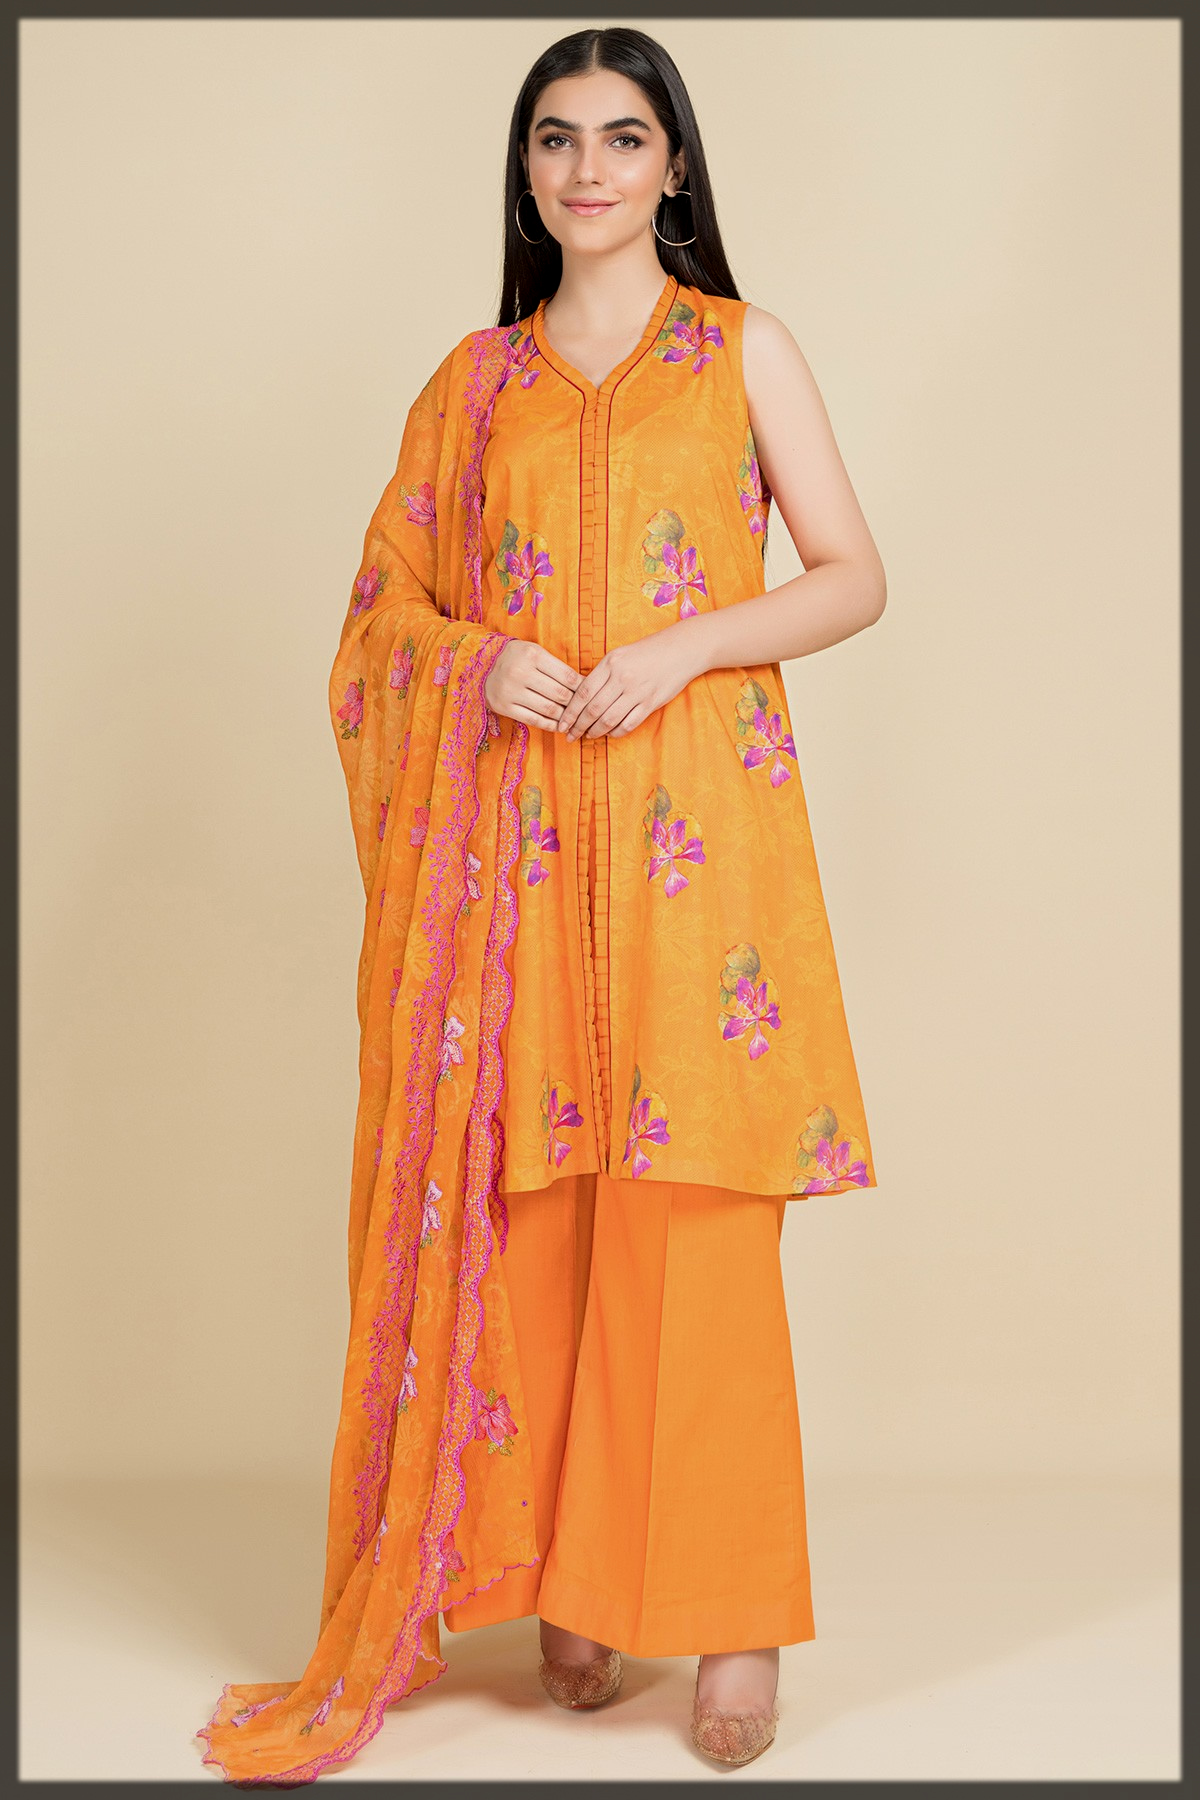 Digital Printed & Embroidered 3 Pcs Suit by Kayseria